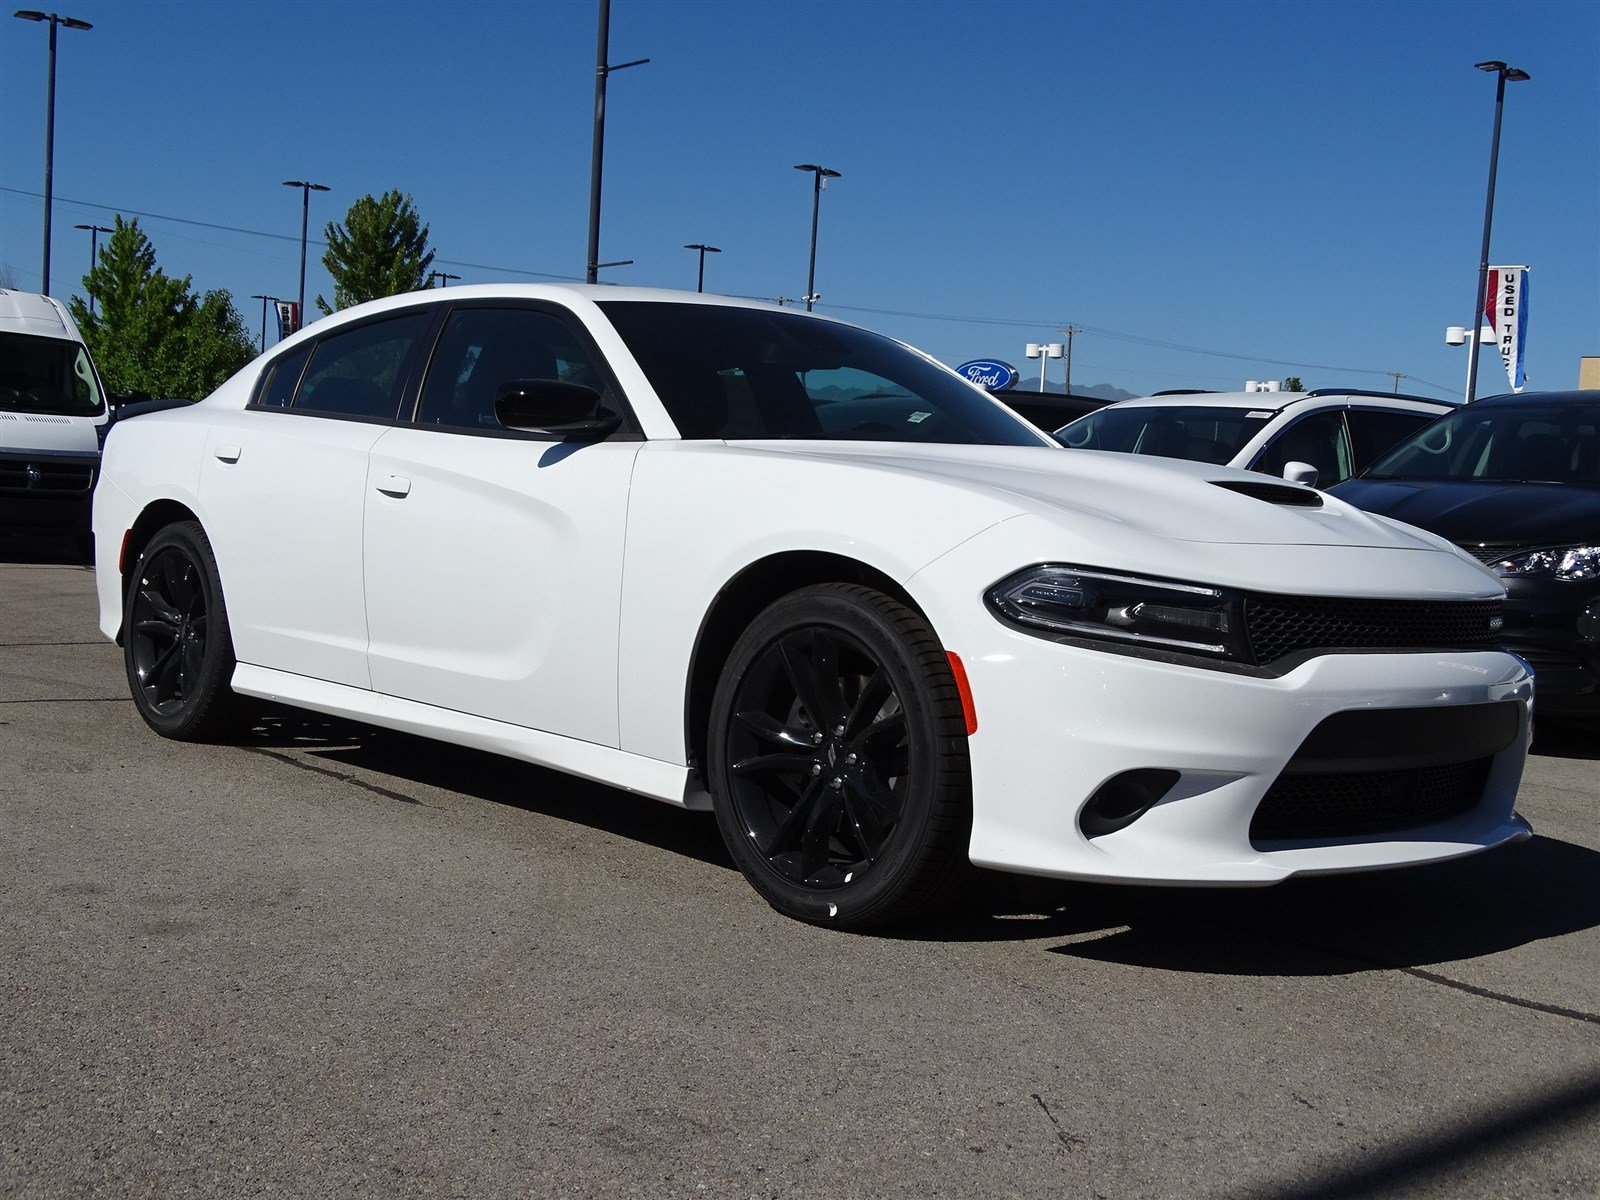 sxt inventory charger antioch in sedan freeland new rwd dodge